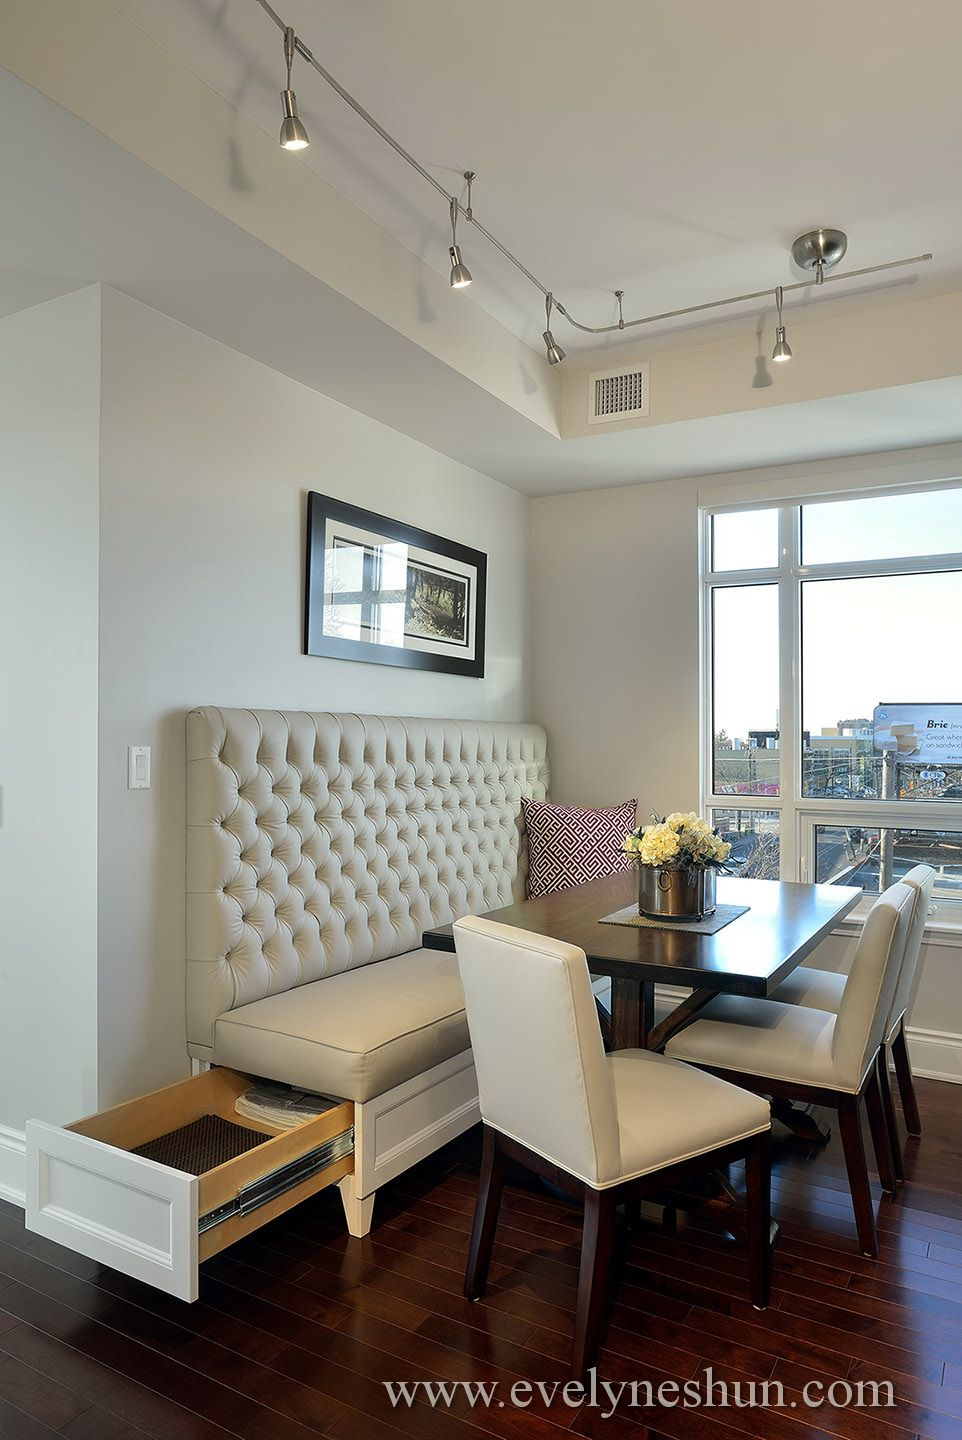 Secret Storage In A Custom Made Dining Tuft Back Banquette